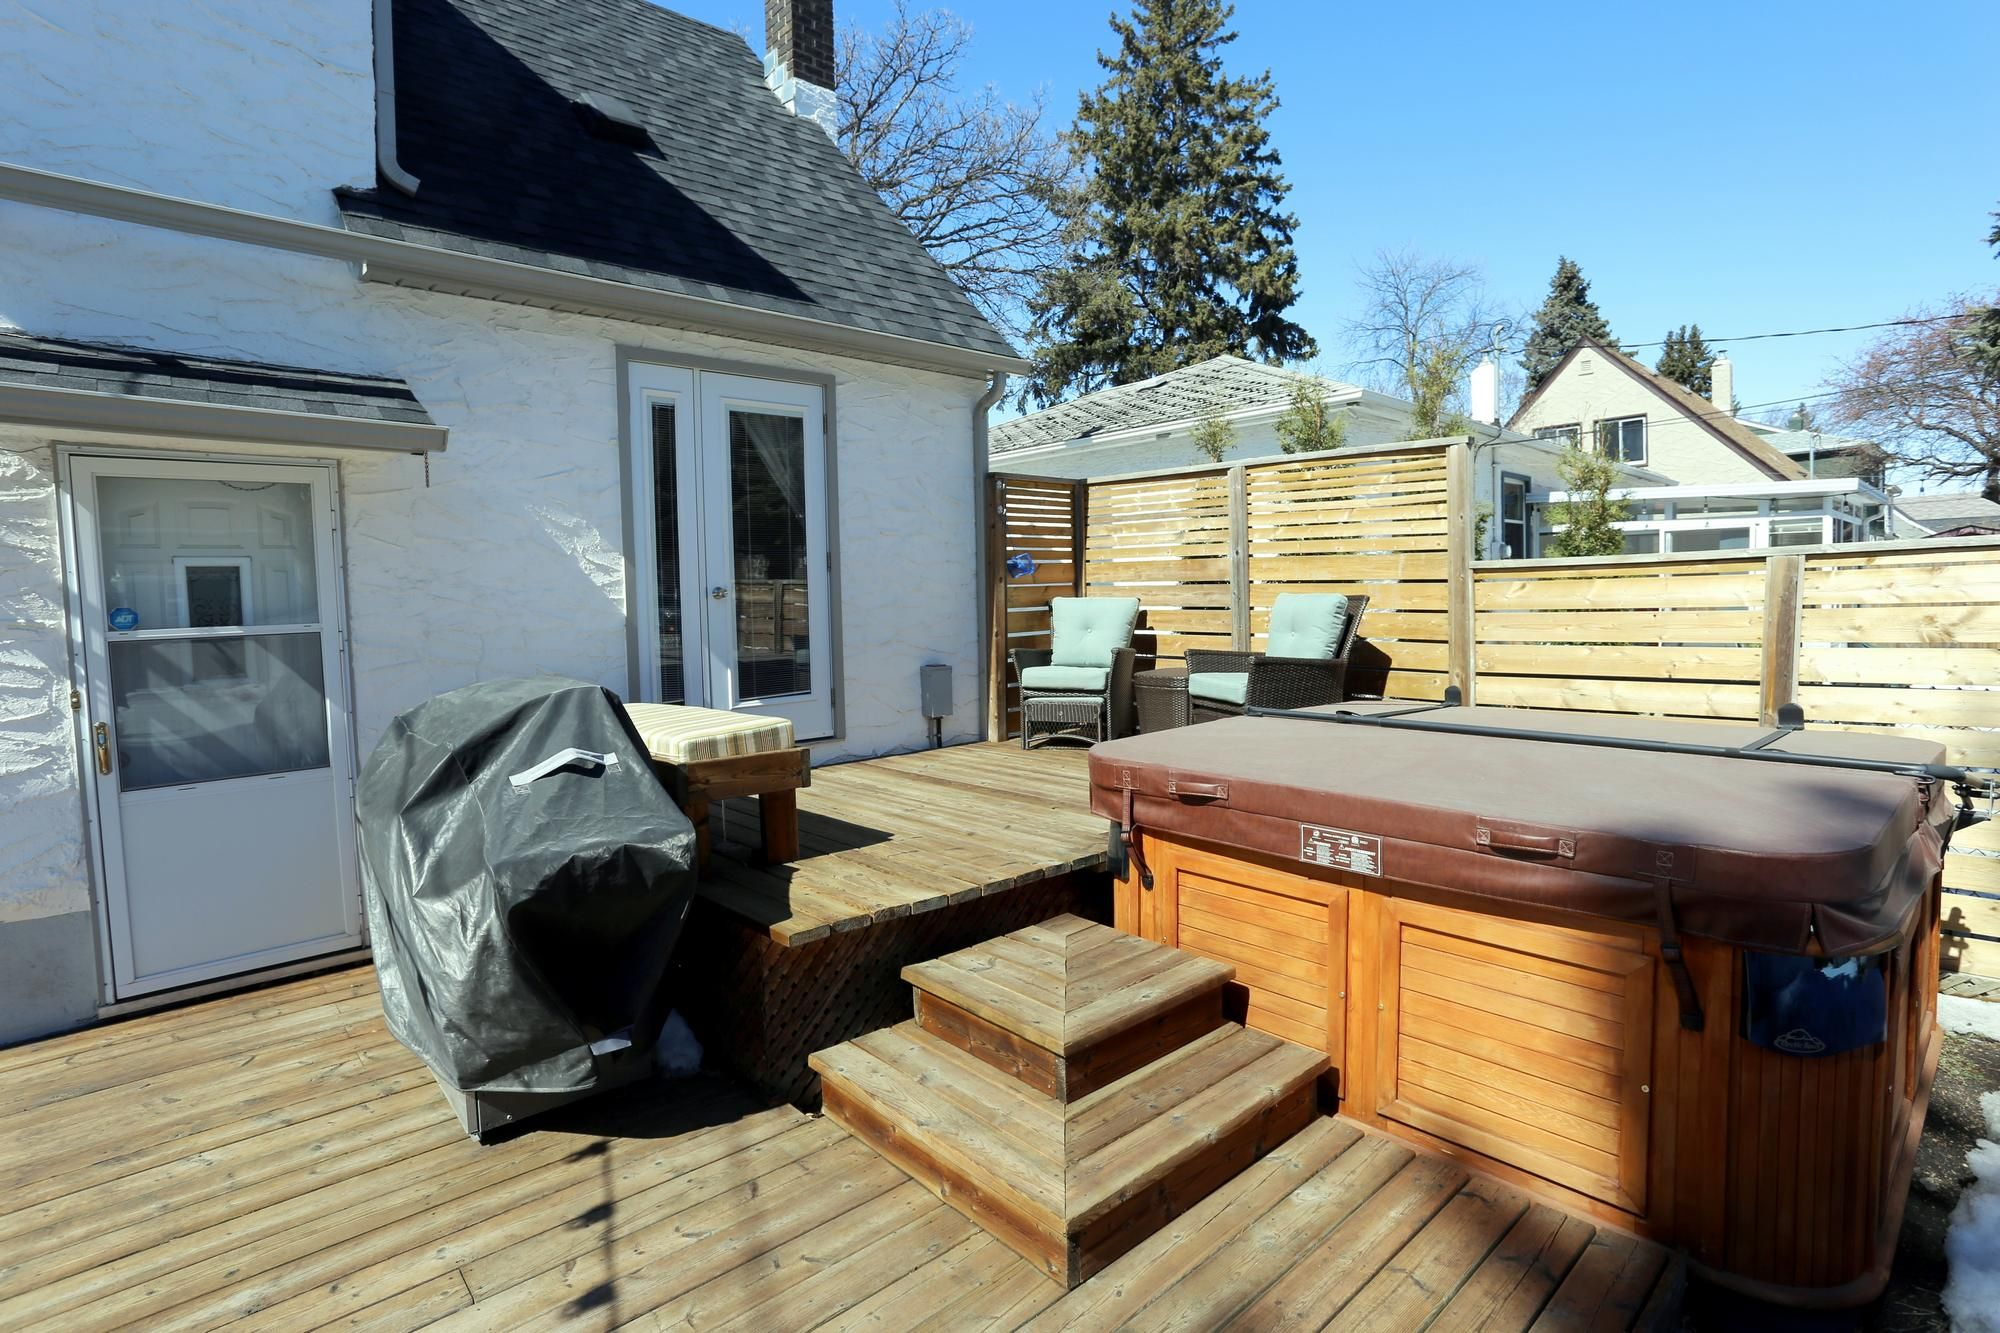 Photo 29: Photos: 349 Guildford Street in Winnipeg: St James Single Family Detached for sale (5E)  : MLS®# 1807654